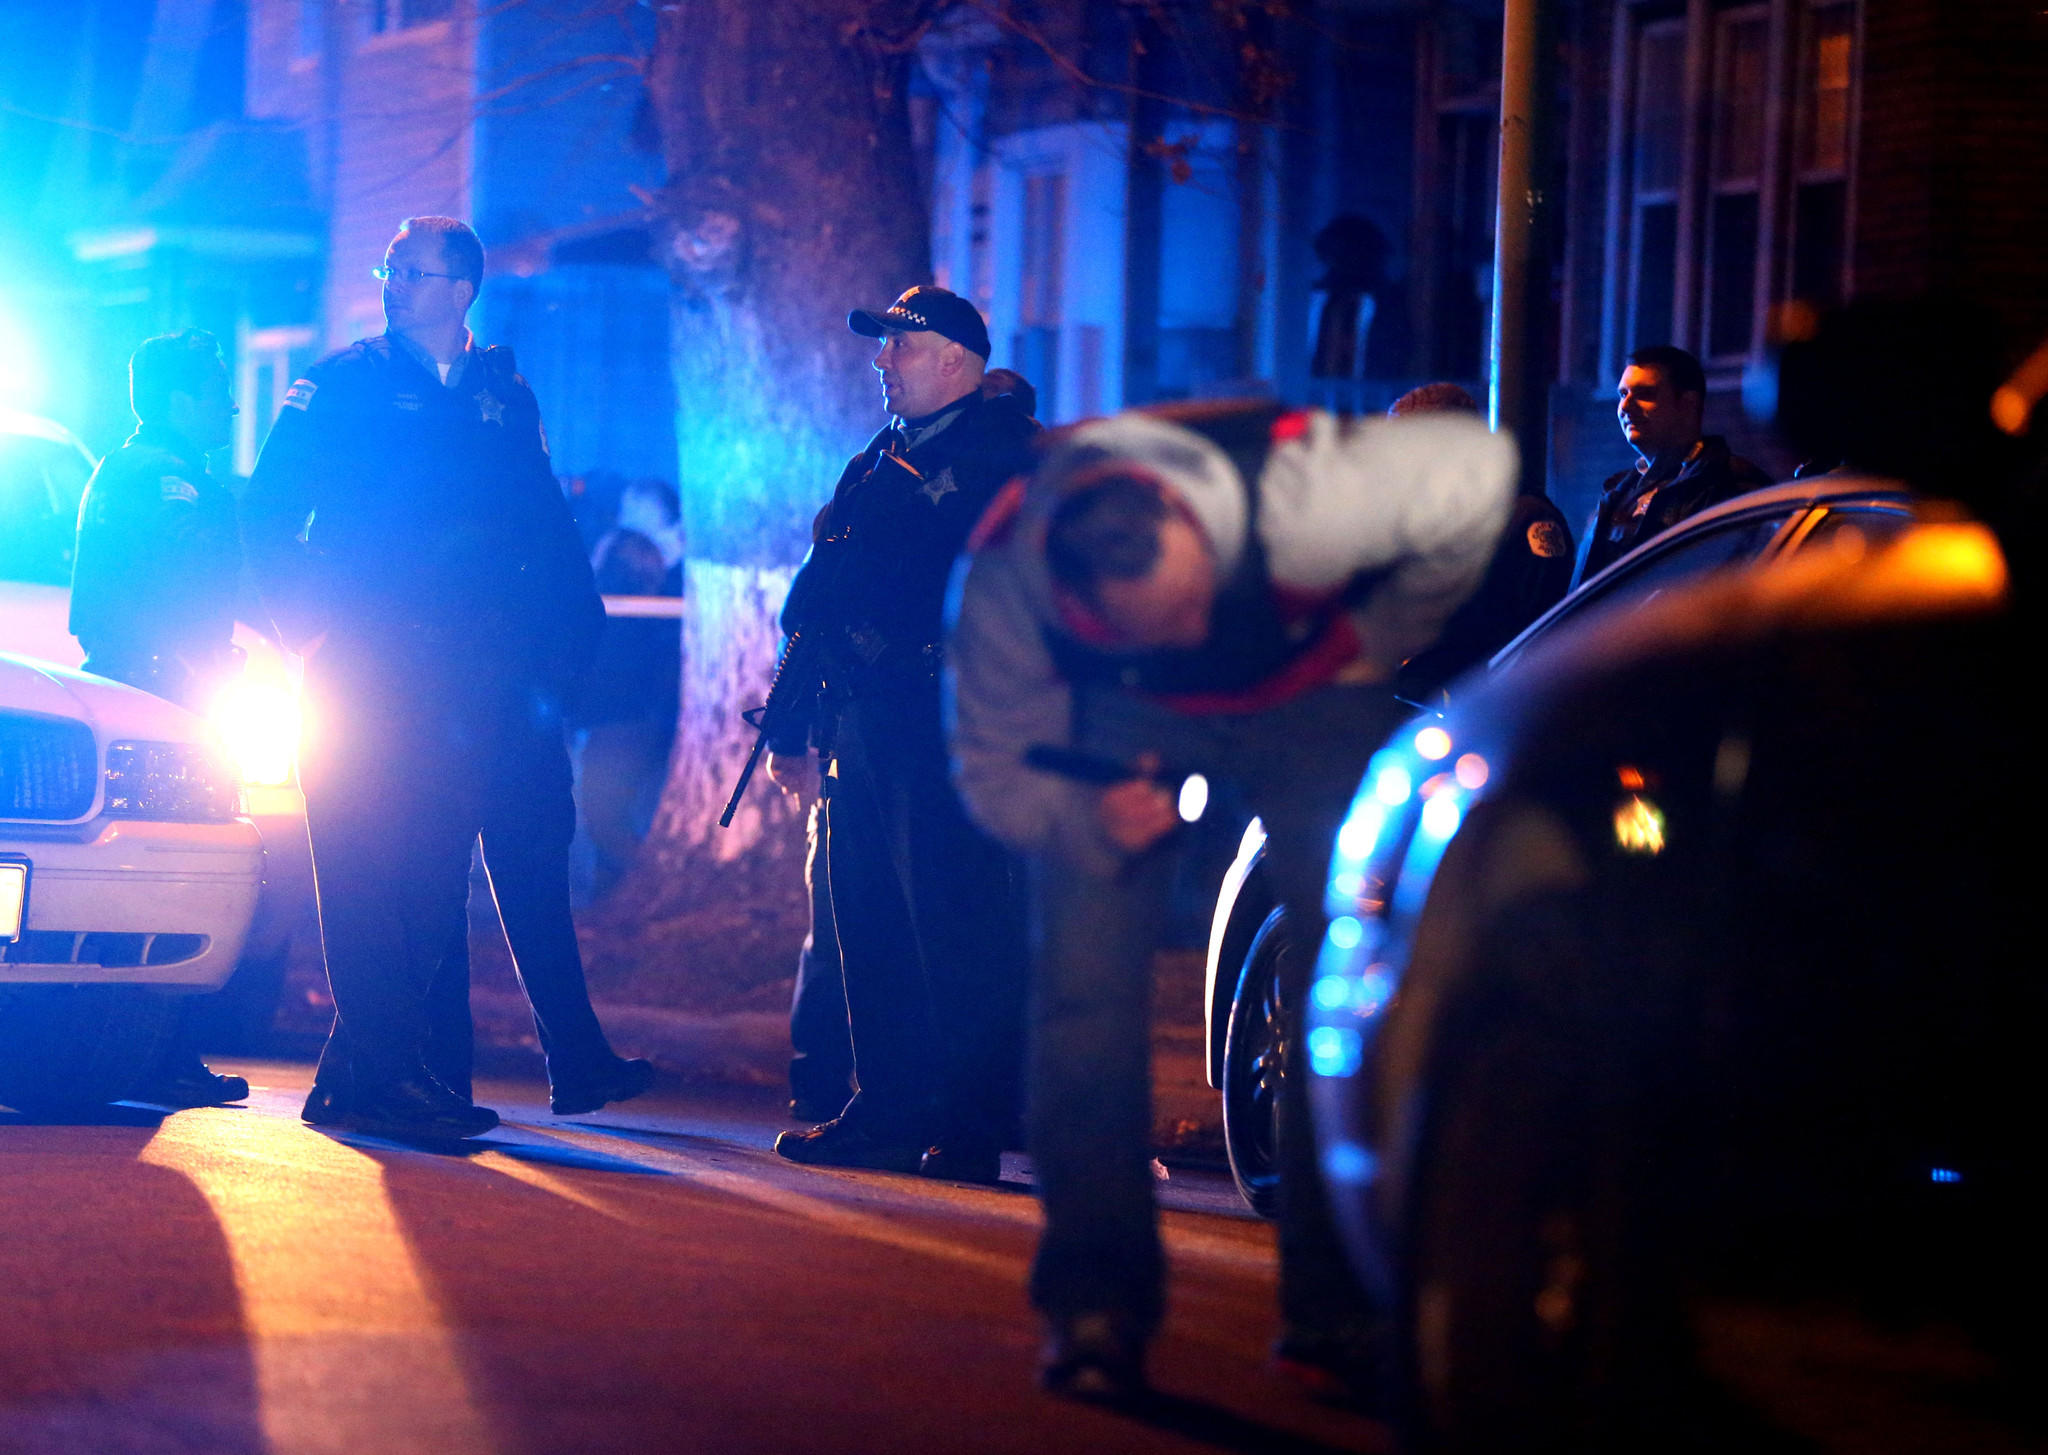 Chicago police work the scene of a multiple shooting in the 4200 block of South Wells Street in Chicago in November 2012.